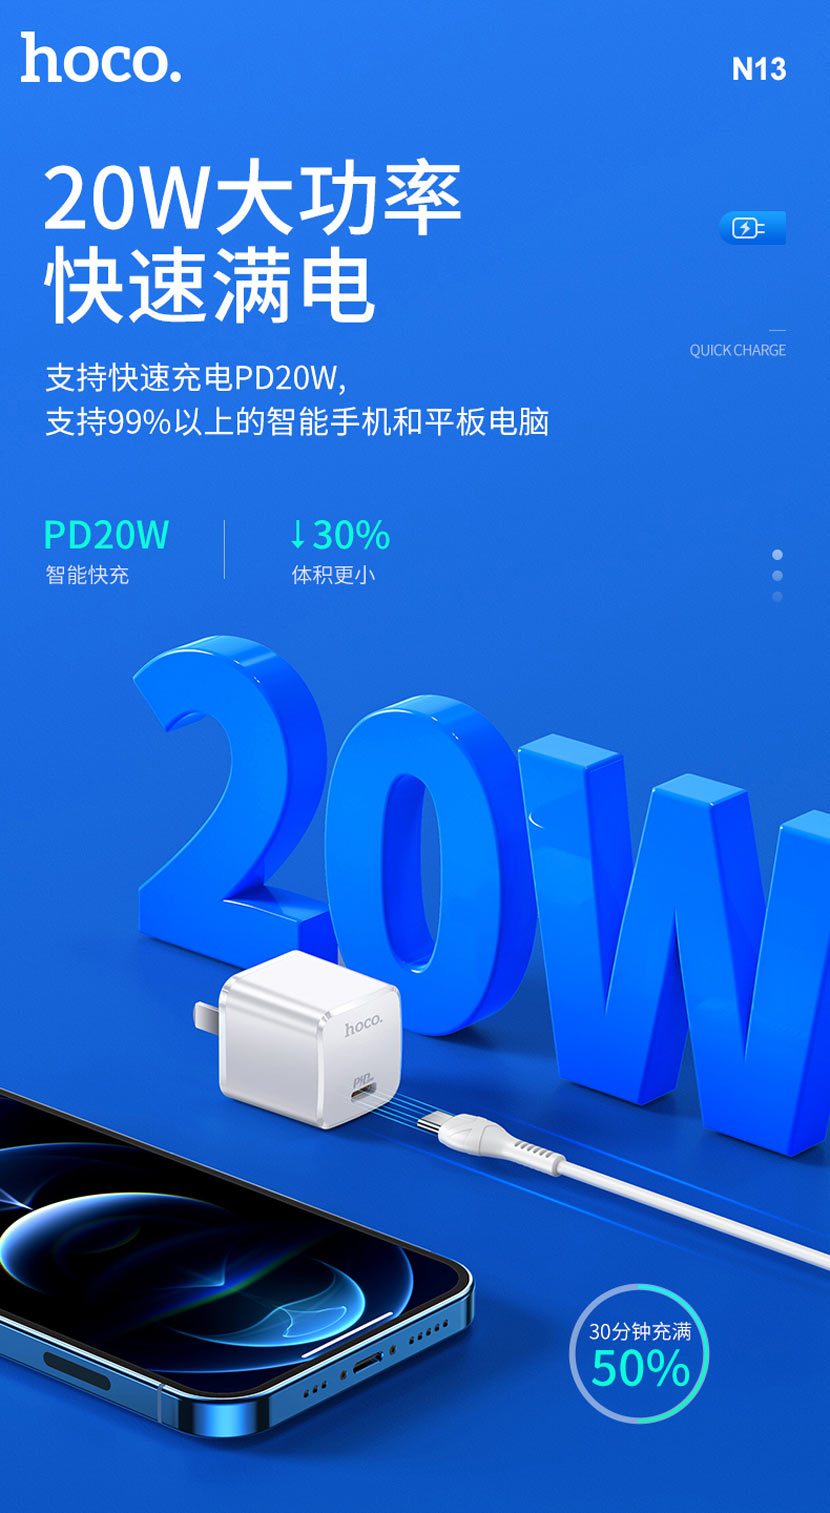 hoco news n10 n13 starter single port pd20w wall charger high power cn